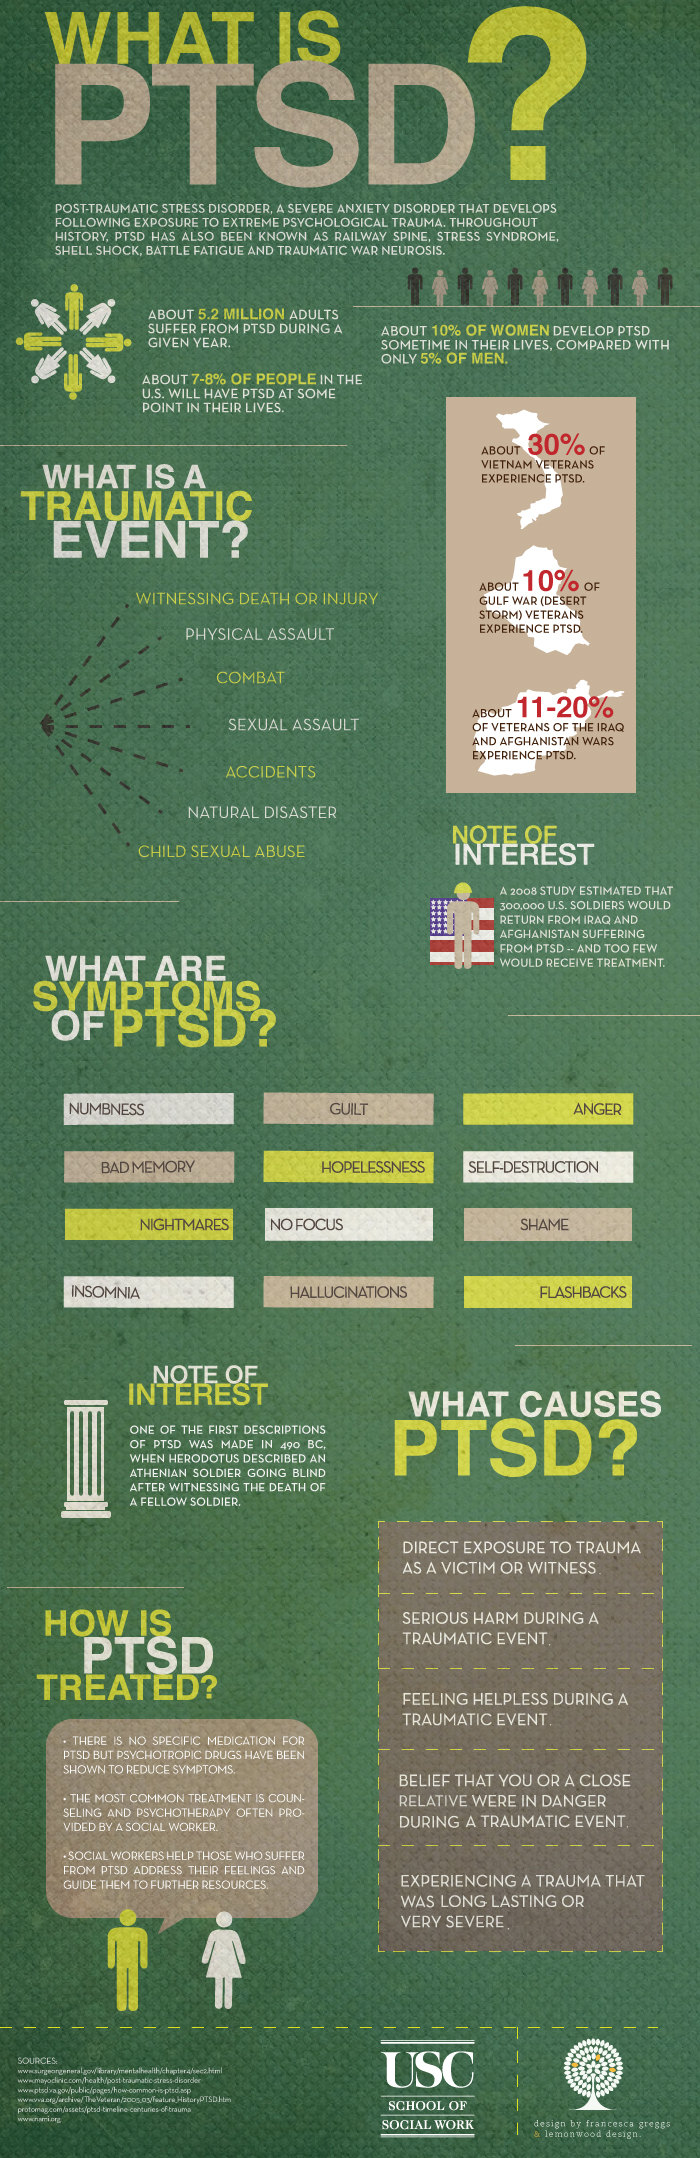 Questions about PTSD Infographic